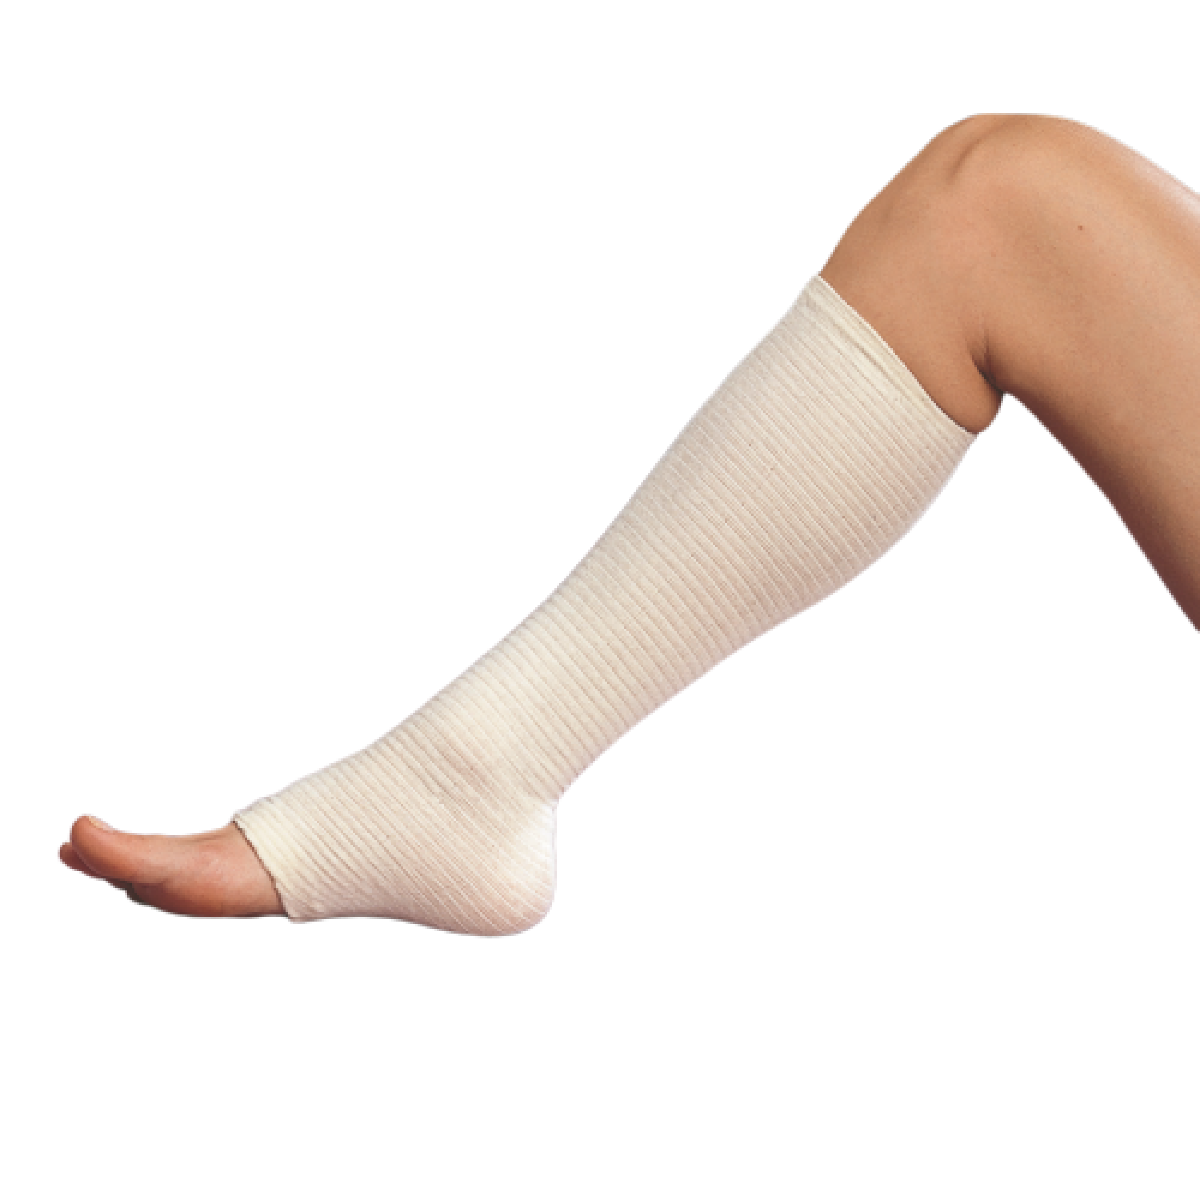 Tubigrip pictured in use on persons calf and part of their foot